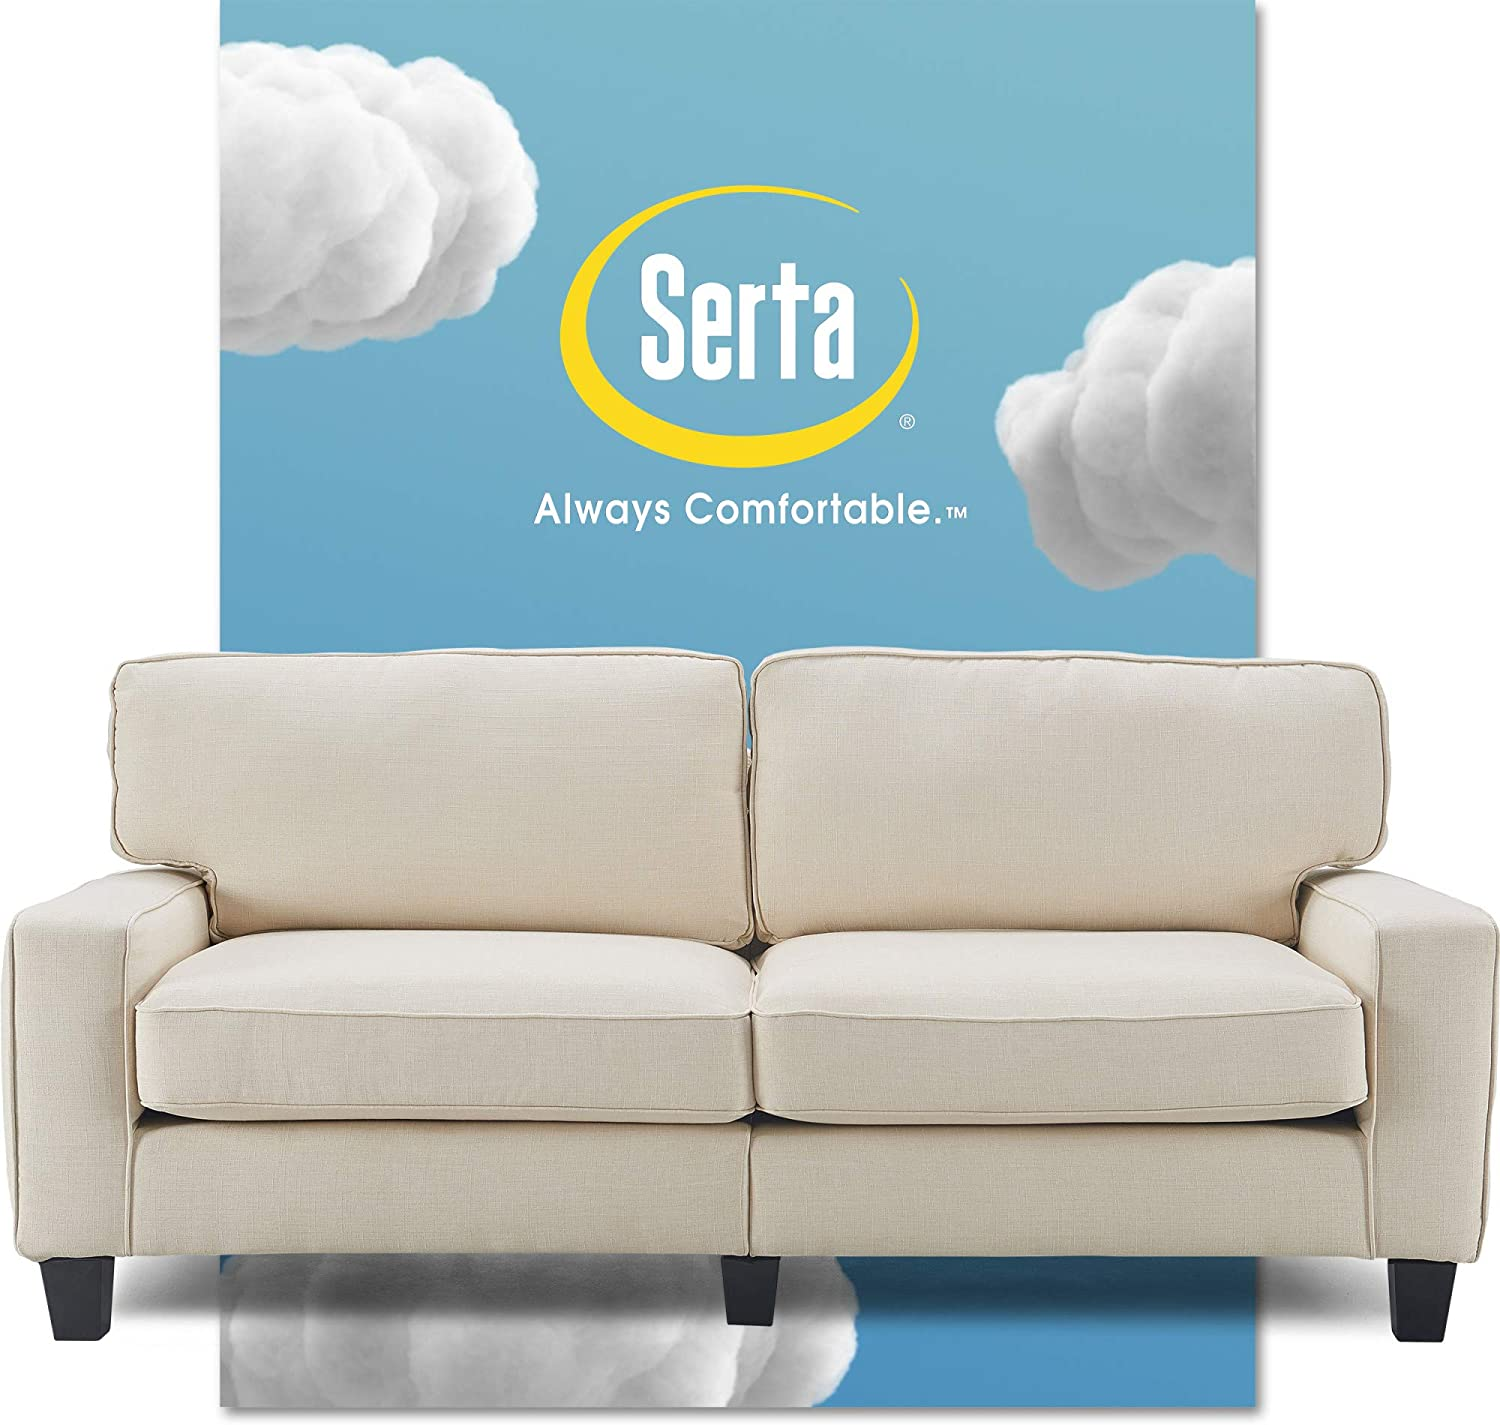 "Serta Palisades Upholstered Sofas for Living Room Modern Design Couch, Straight Arms, 78"", Buttercream"